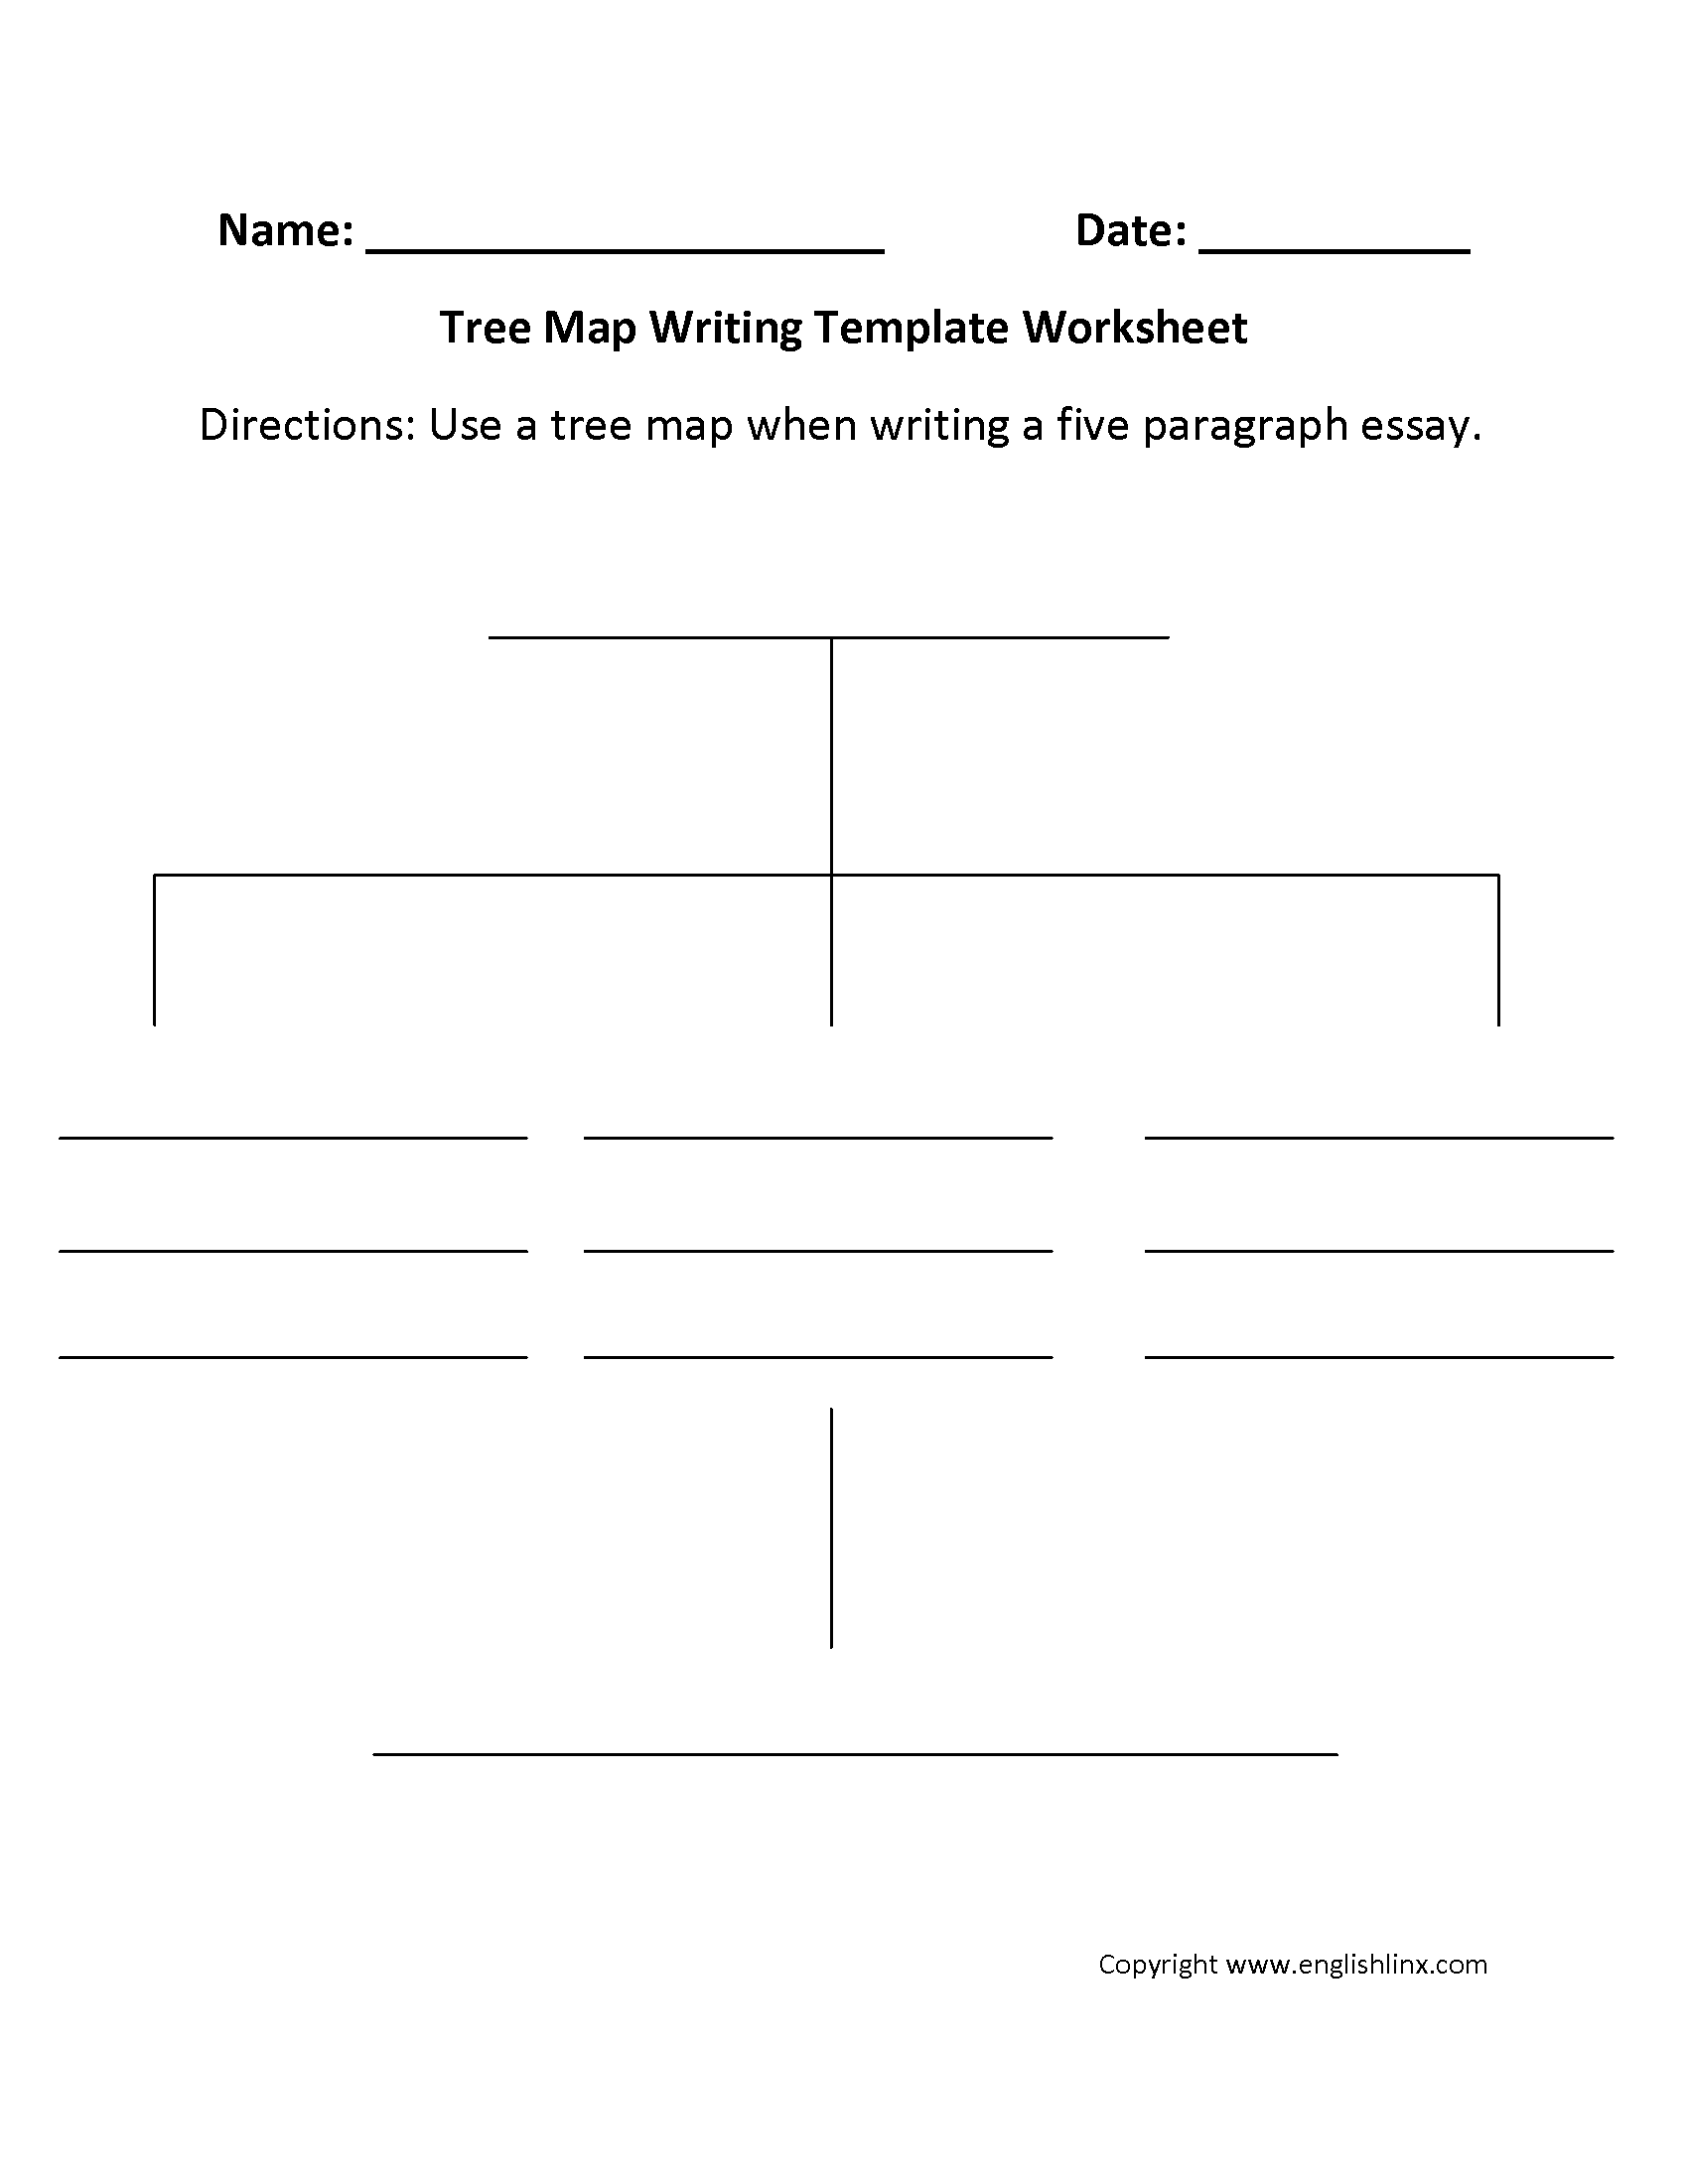 https://englishlinx.com/images/Tree-Map-Writing-Template-Worksheet.png